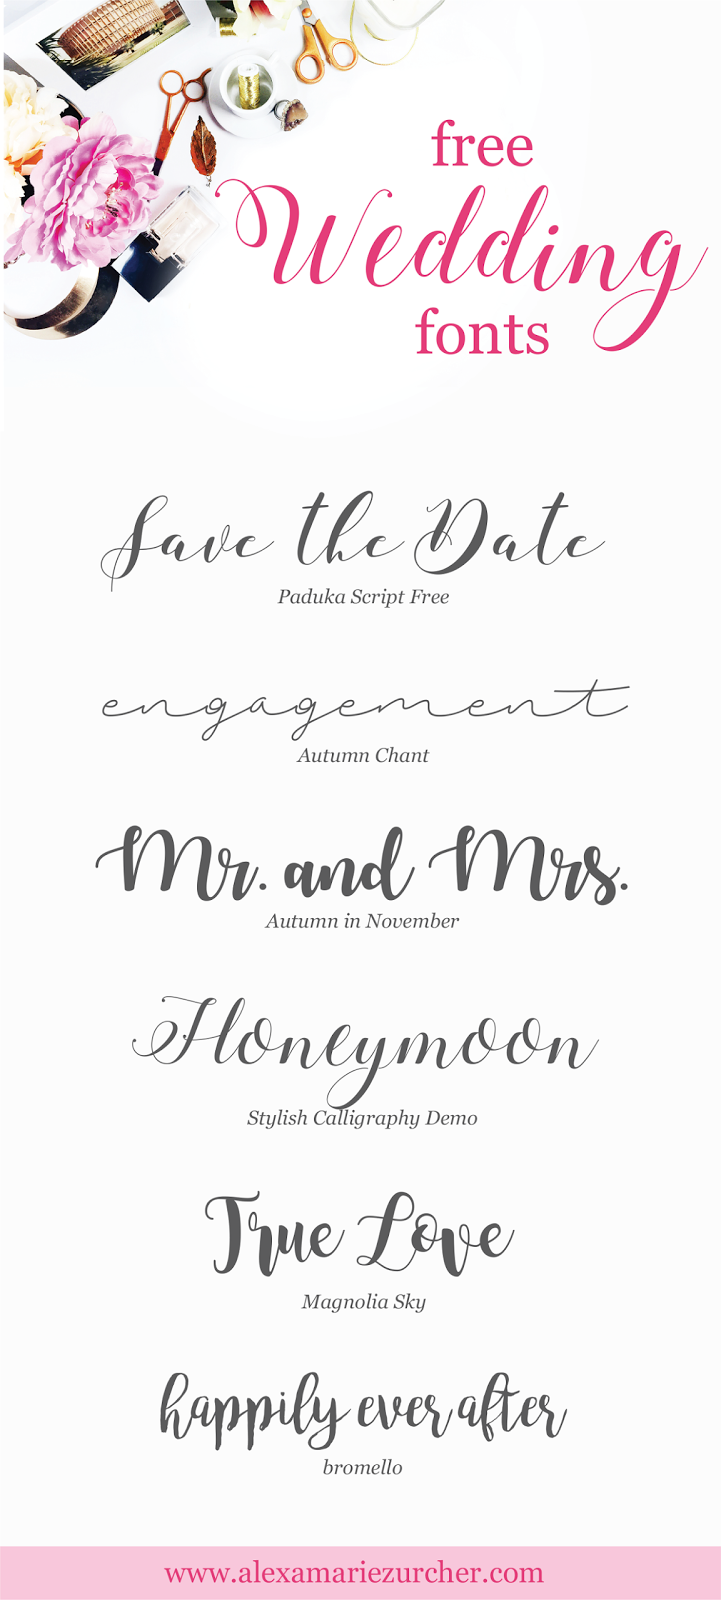 50 Free Fonts Best Free Fonts For Wedding Invitations - oukas.info